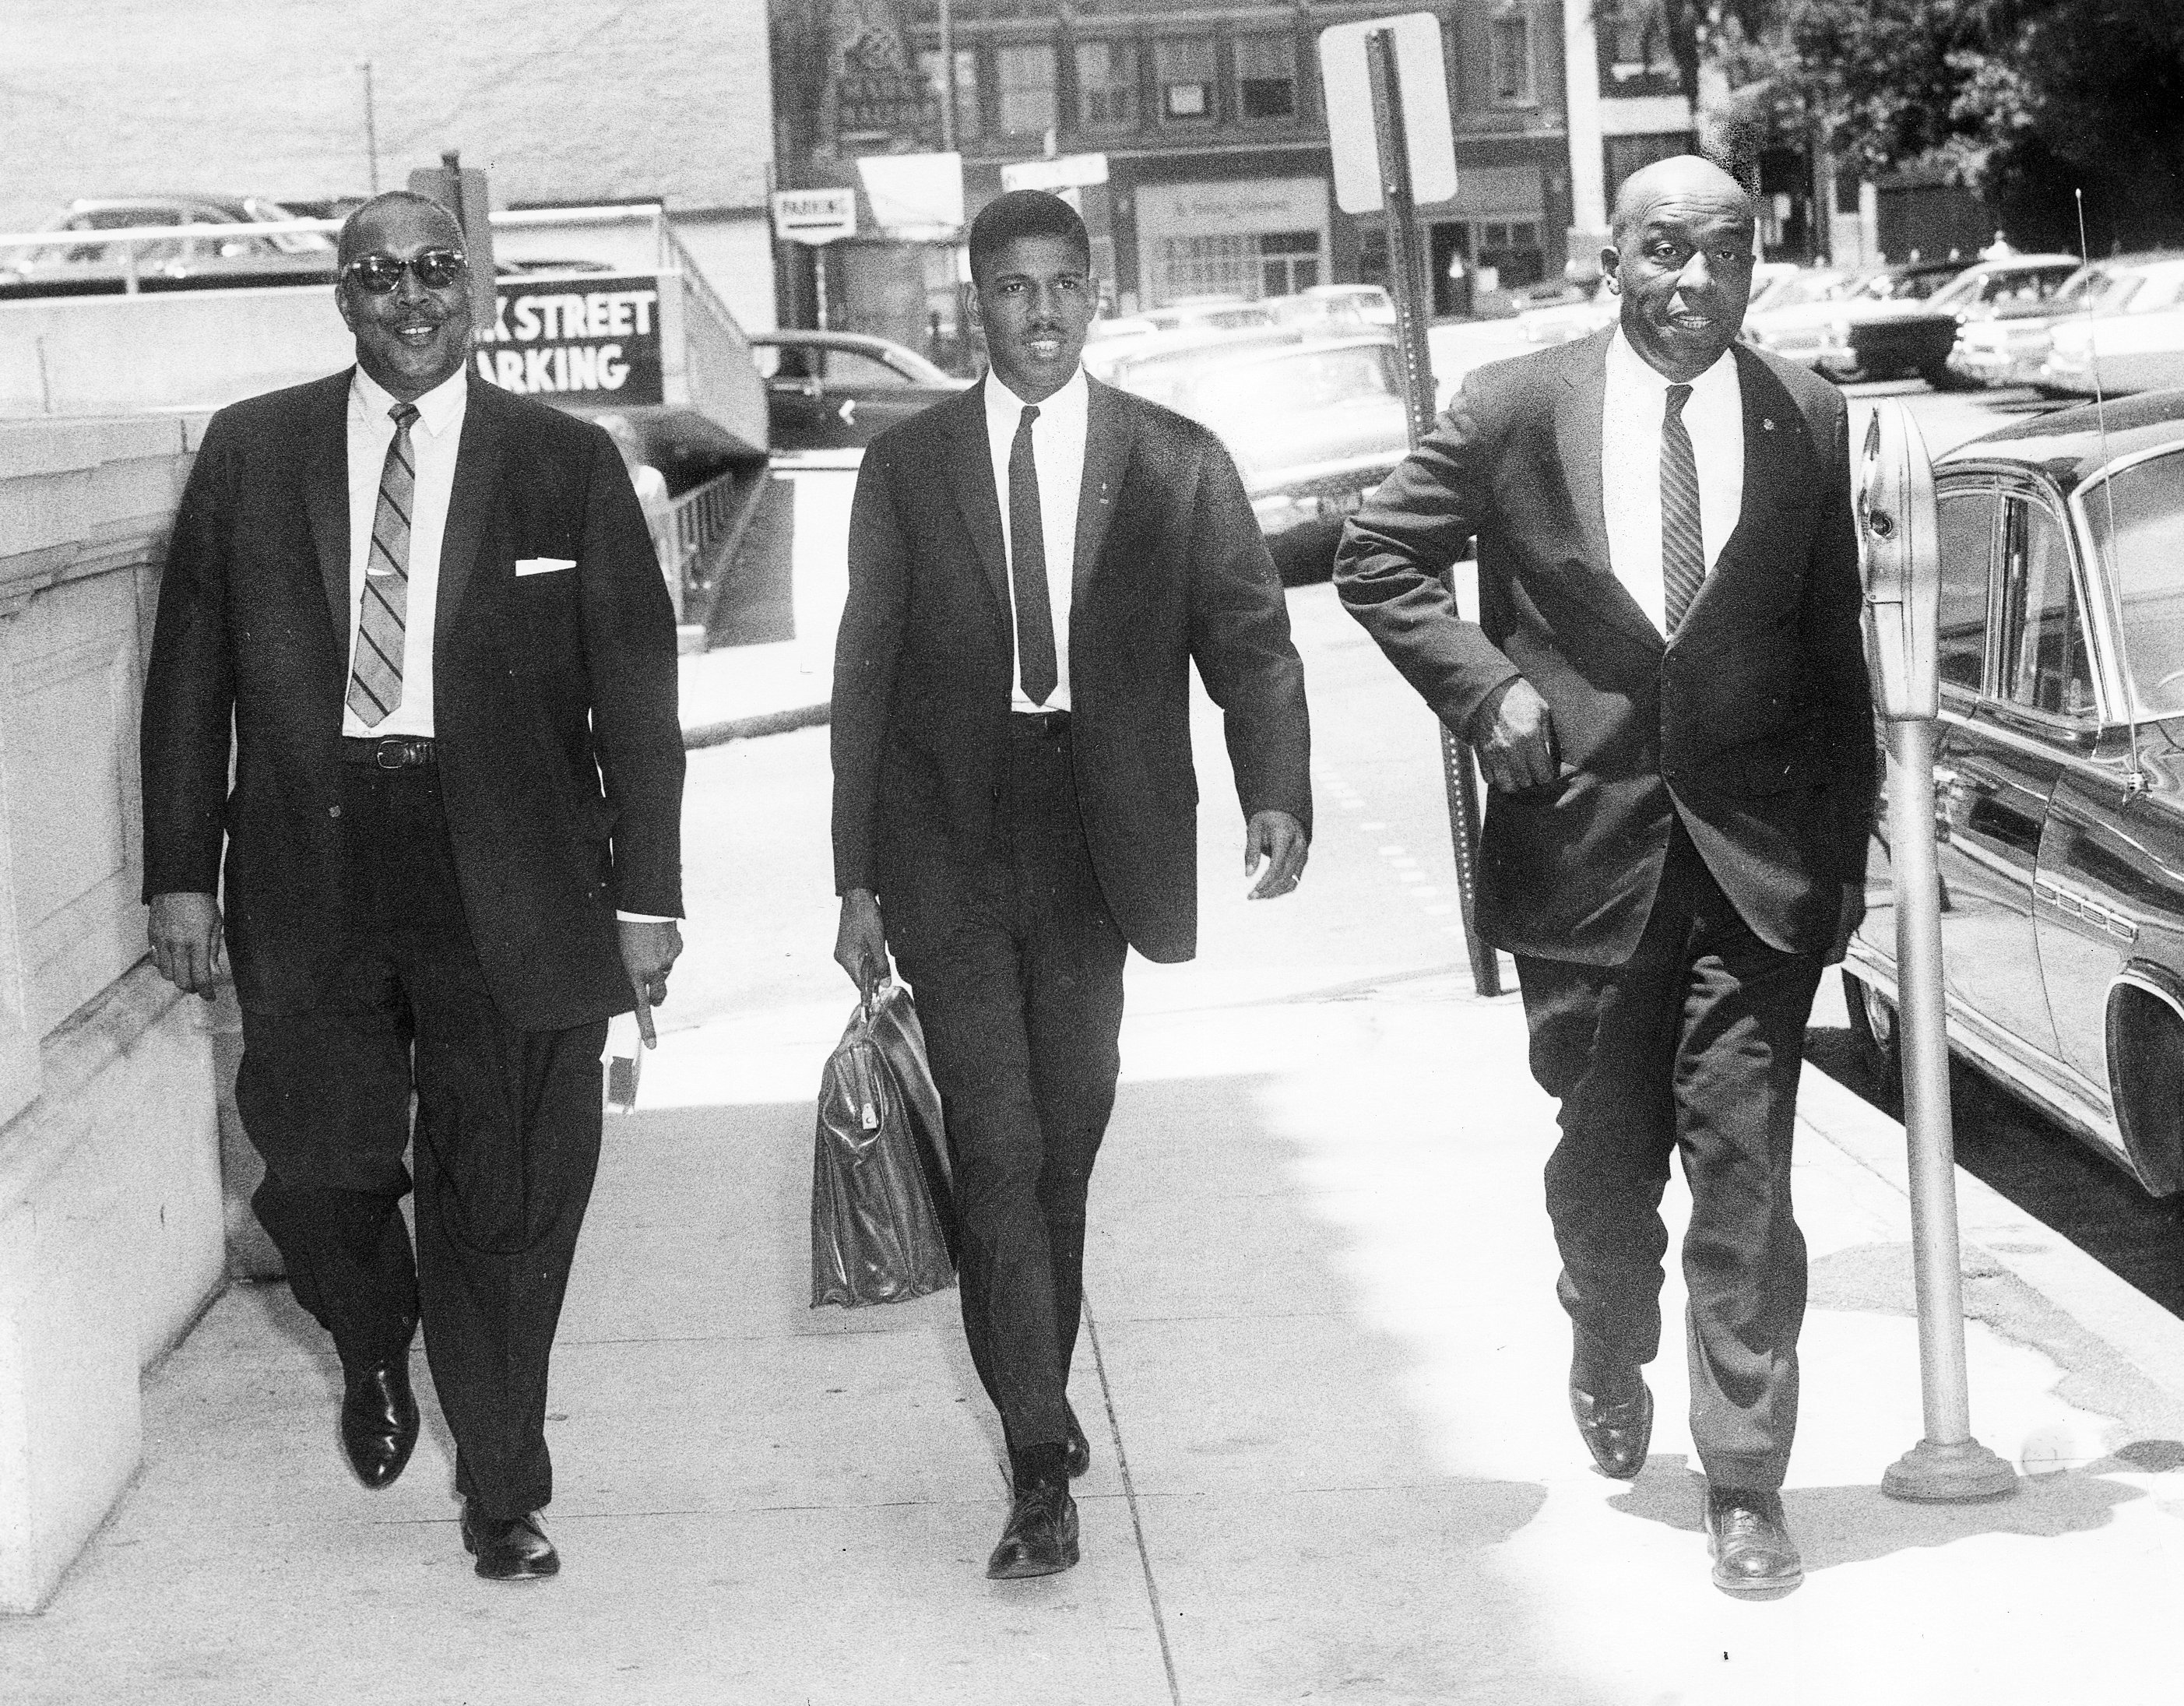 Three NAACP Lawyers Involved in the Prince Edward School Litigation -- They are (from left) Frank D. Reeves, Henry L. Marsh III and S. W. Tucker. June 18, 1964